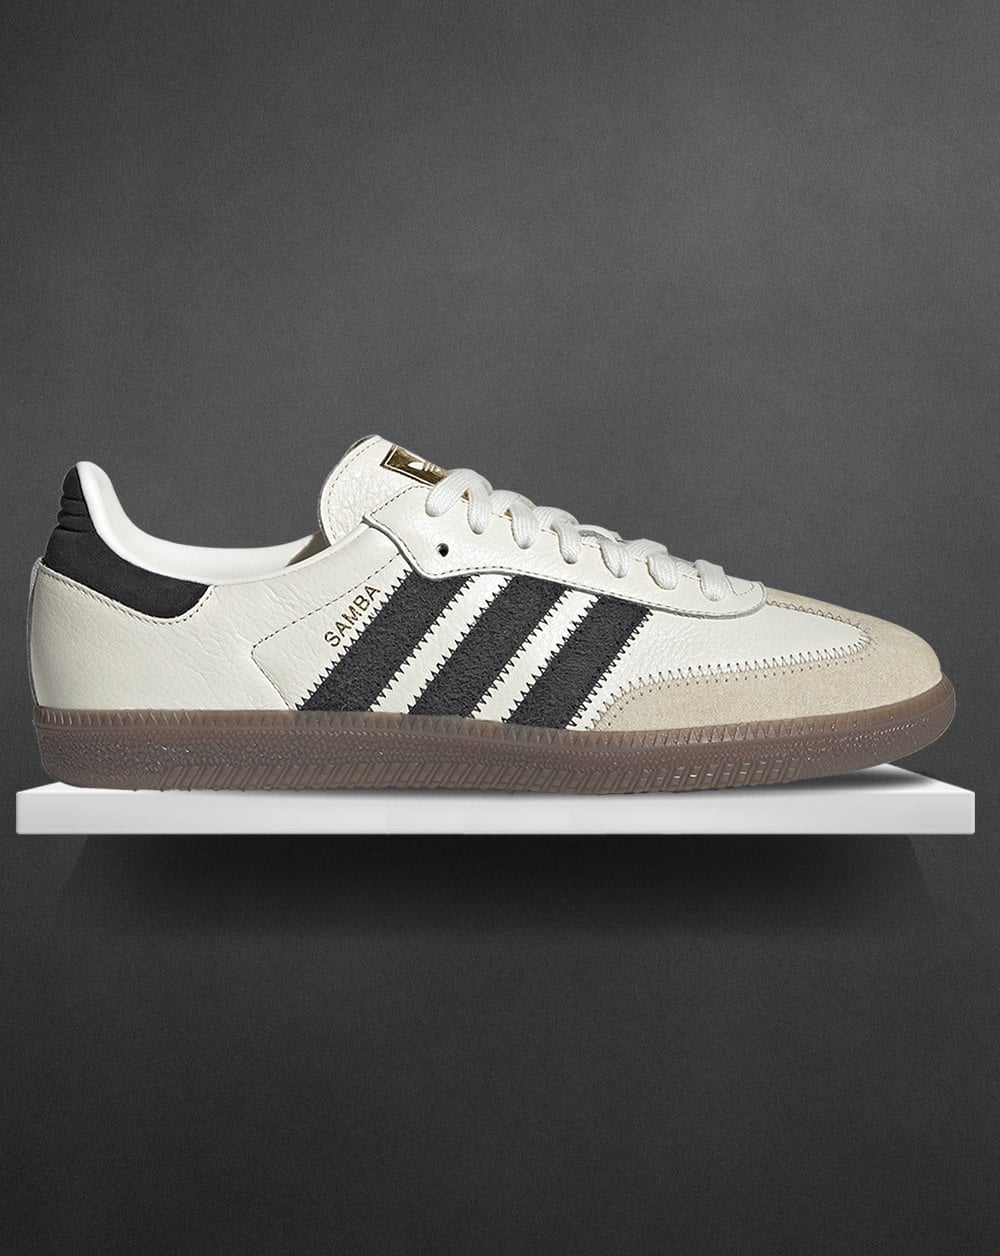 47dc18b0416 Adidas Samba Og Trainers Off White/Carbon - Adidas At 80s Casual ...